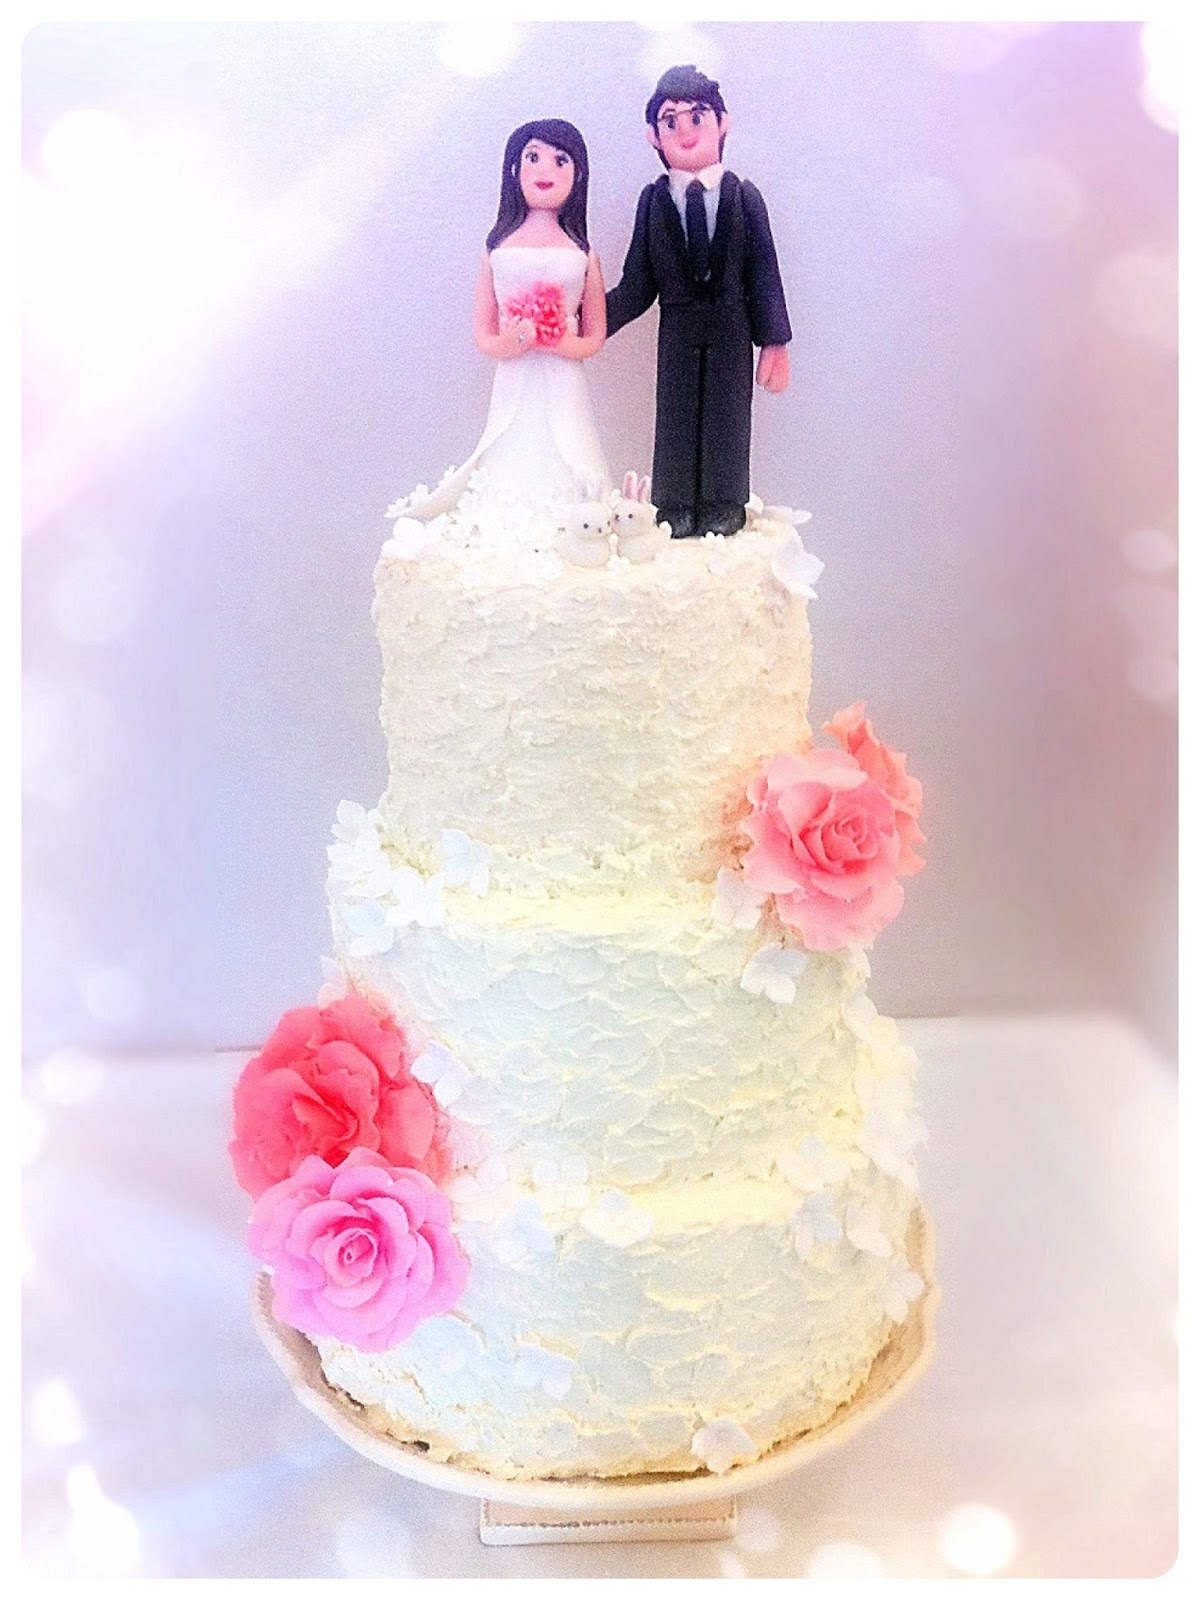 Sweet Swirly Buttercream Frosting Wedding Cake with Bride and Groom Cake Toppers Cherie Kelly London